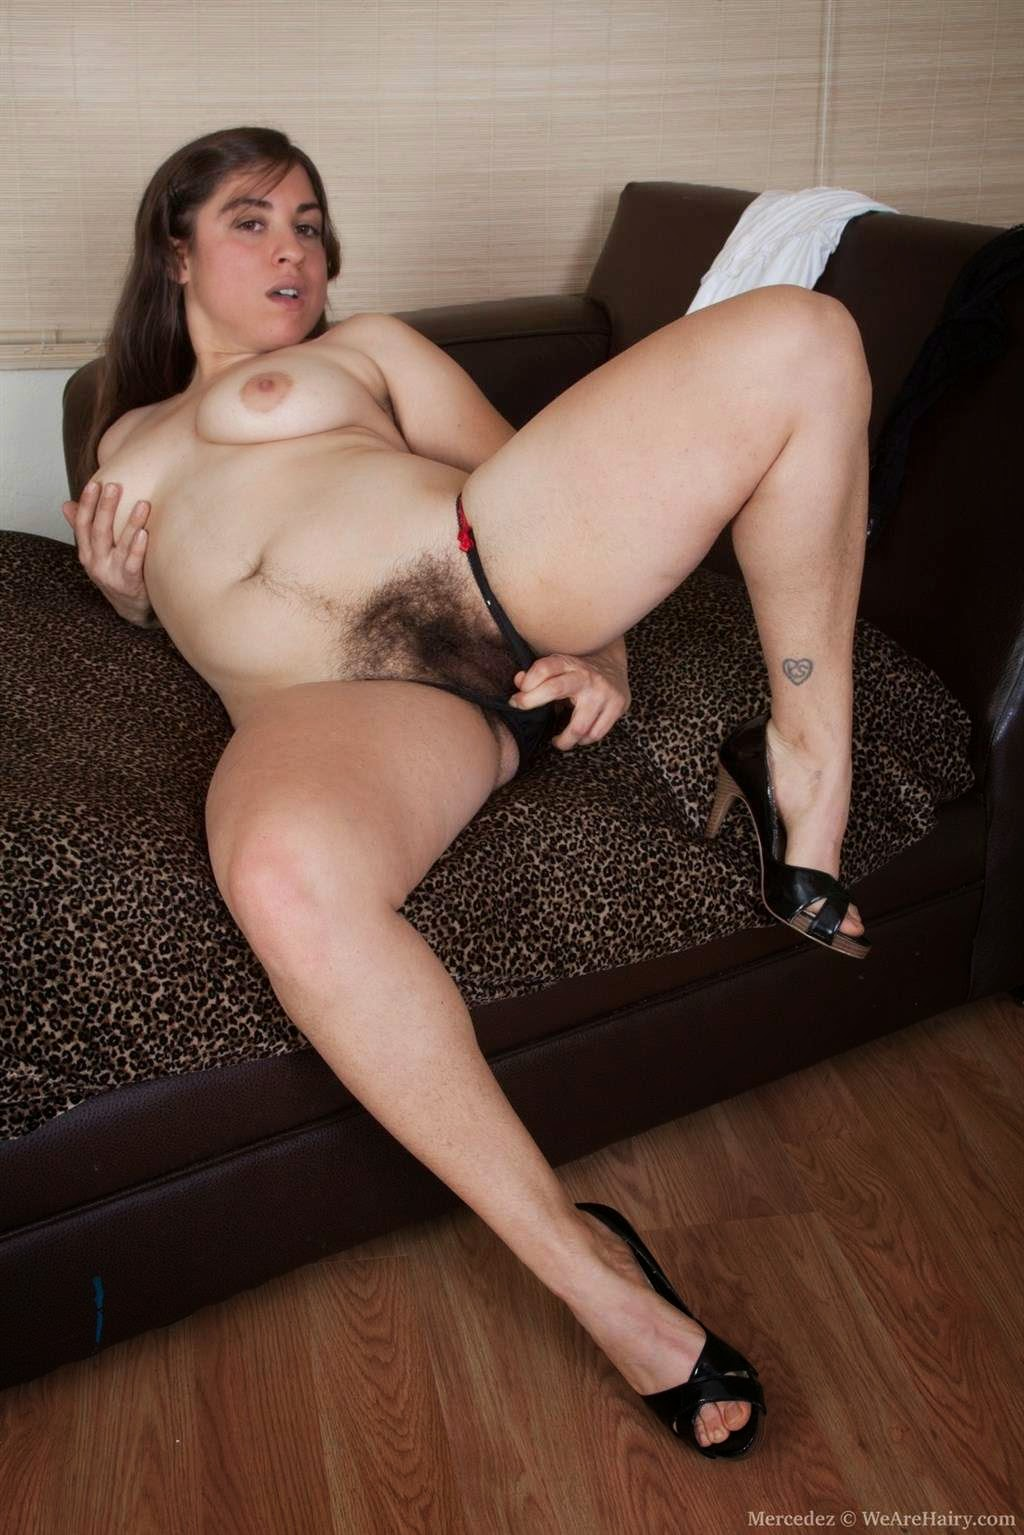 Milf daughter seduction